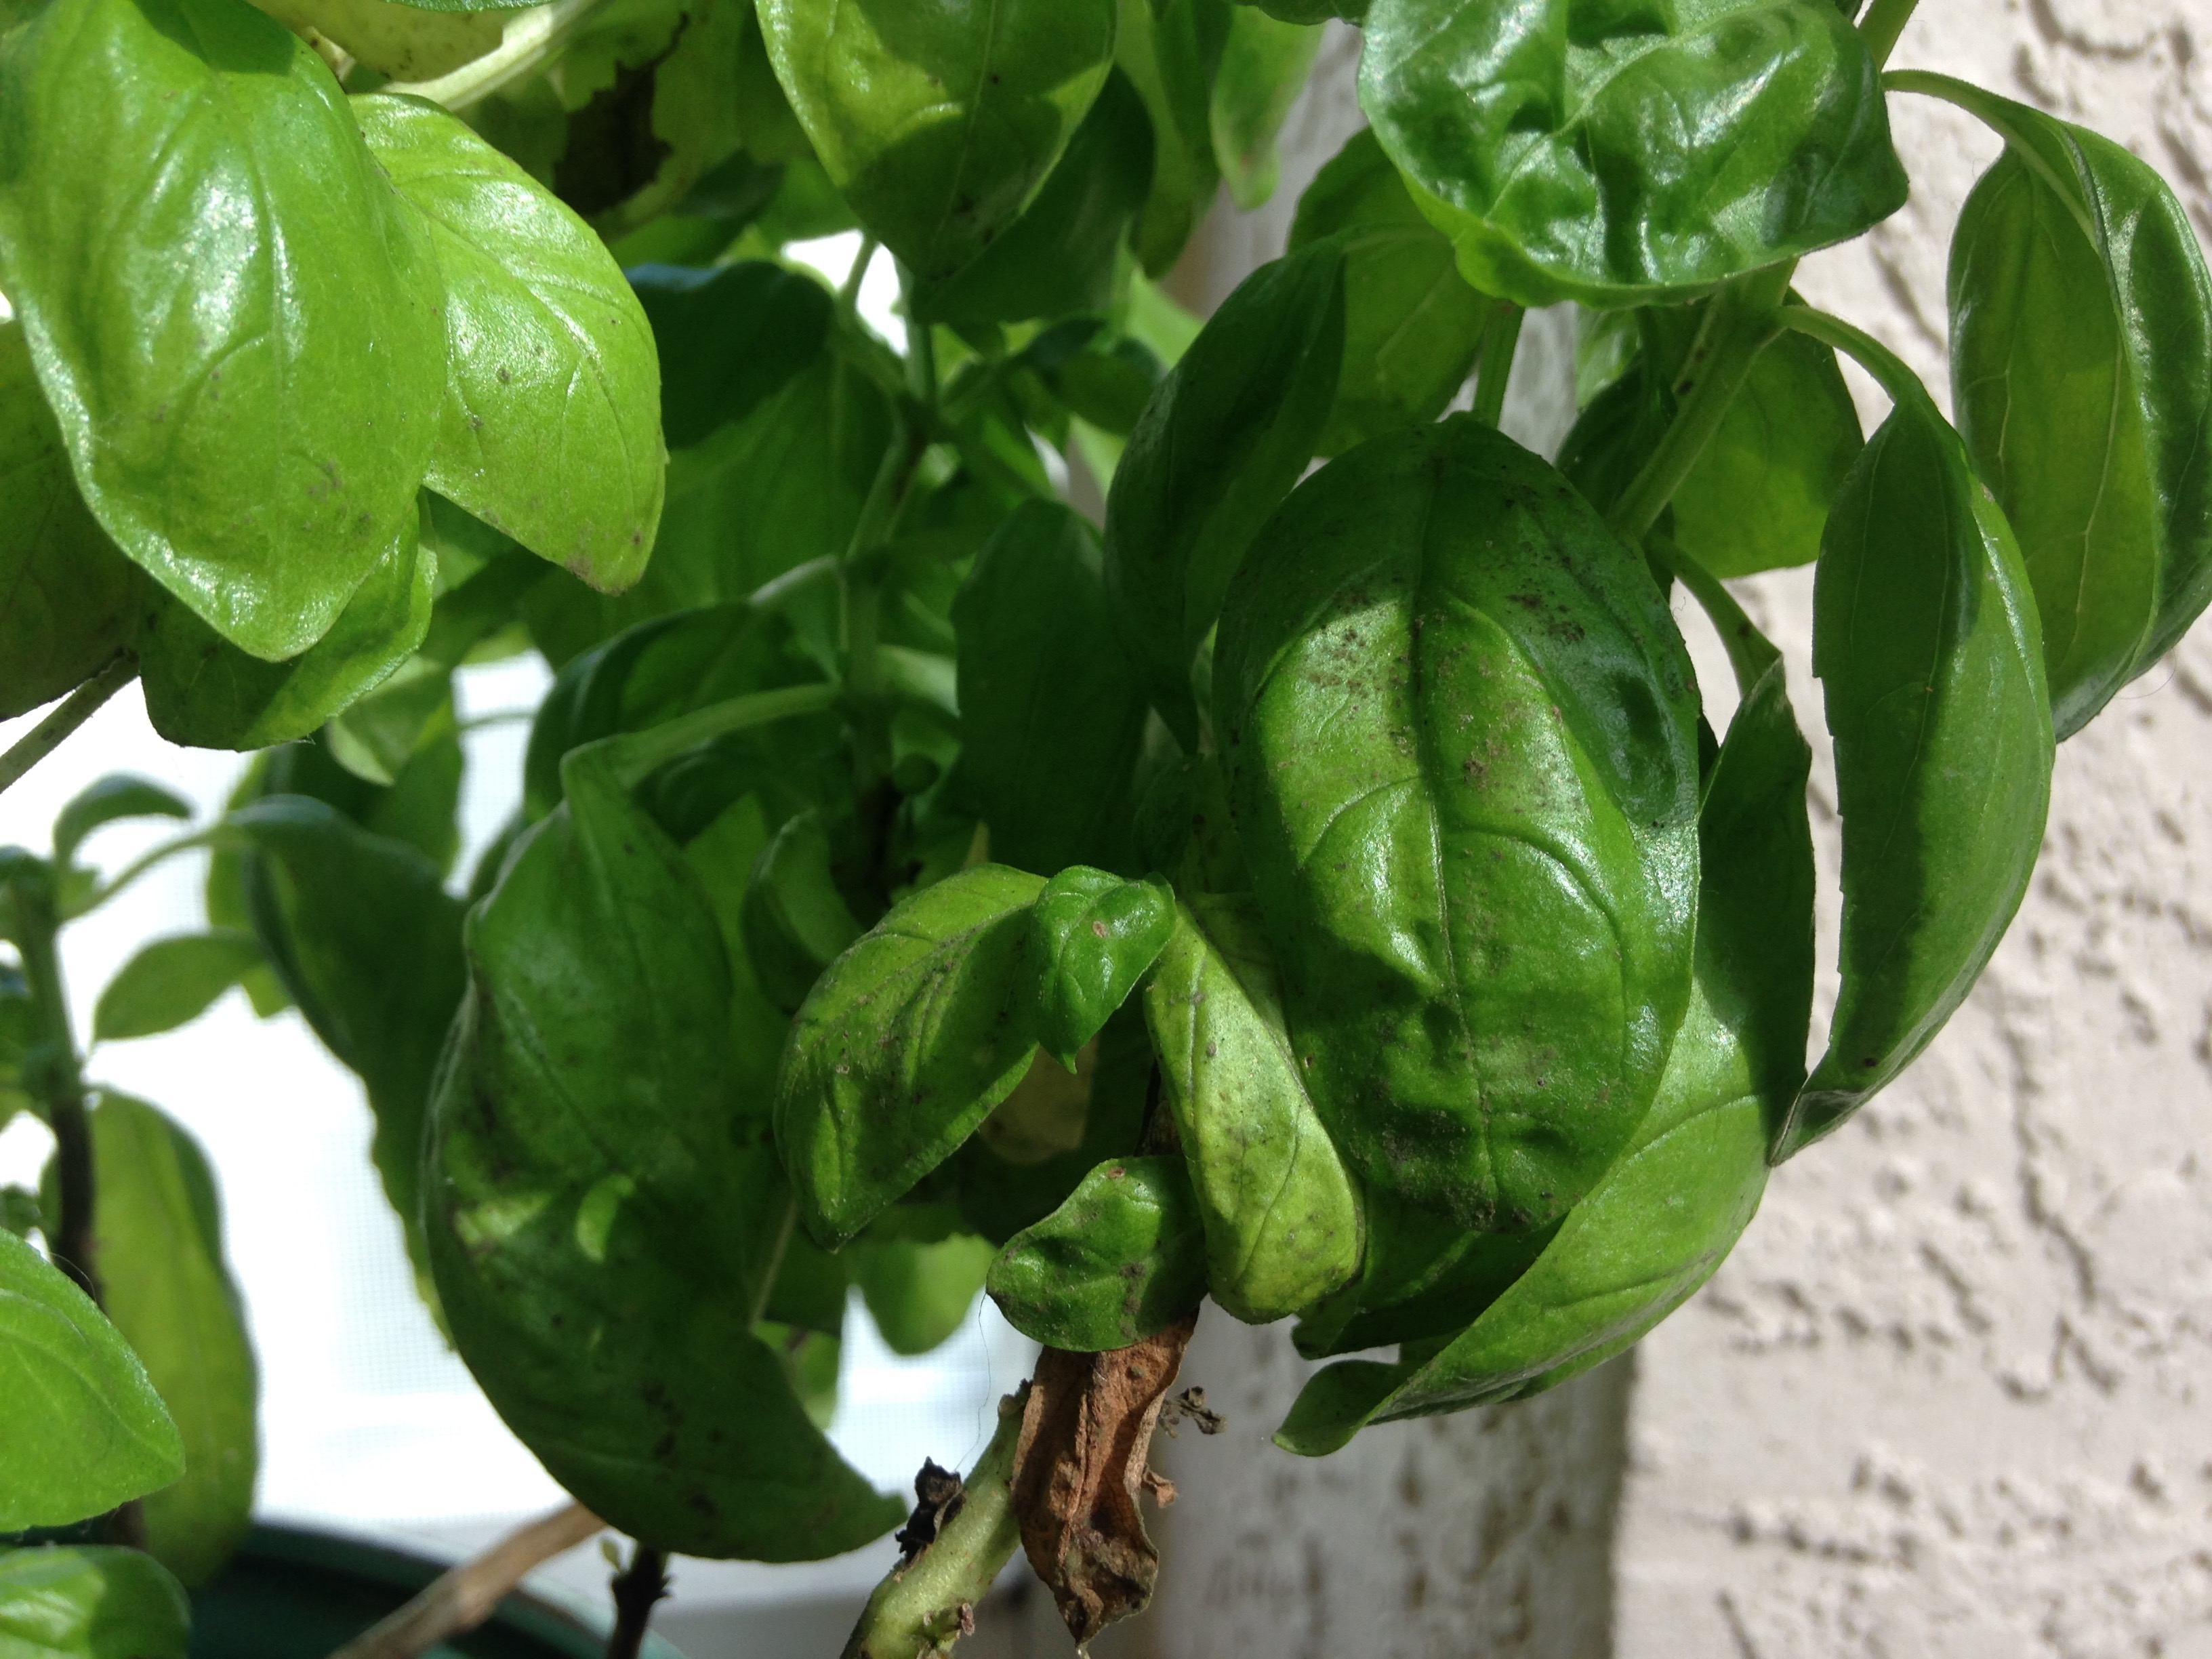 Basil damaged by Thrips